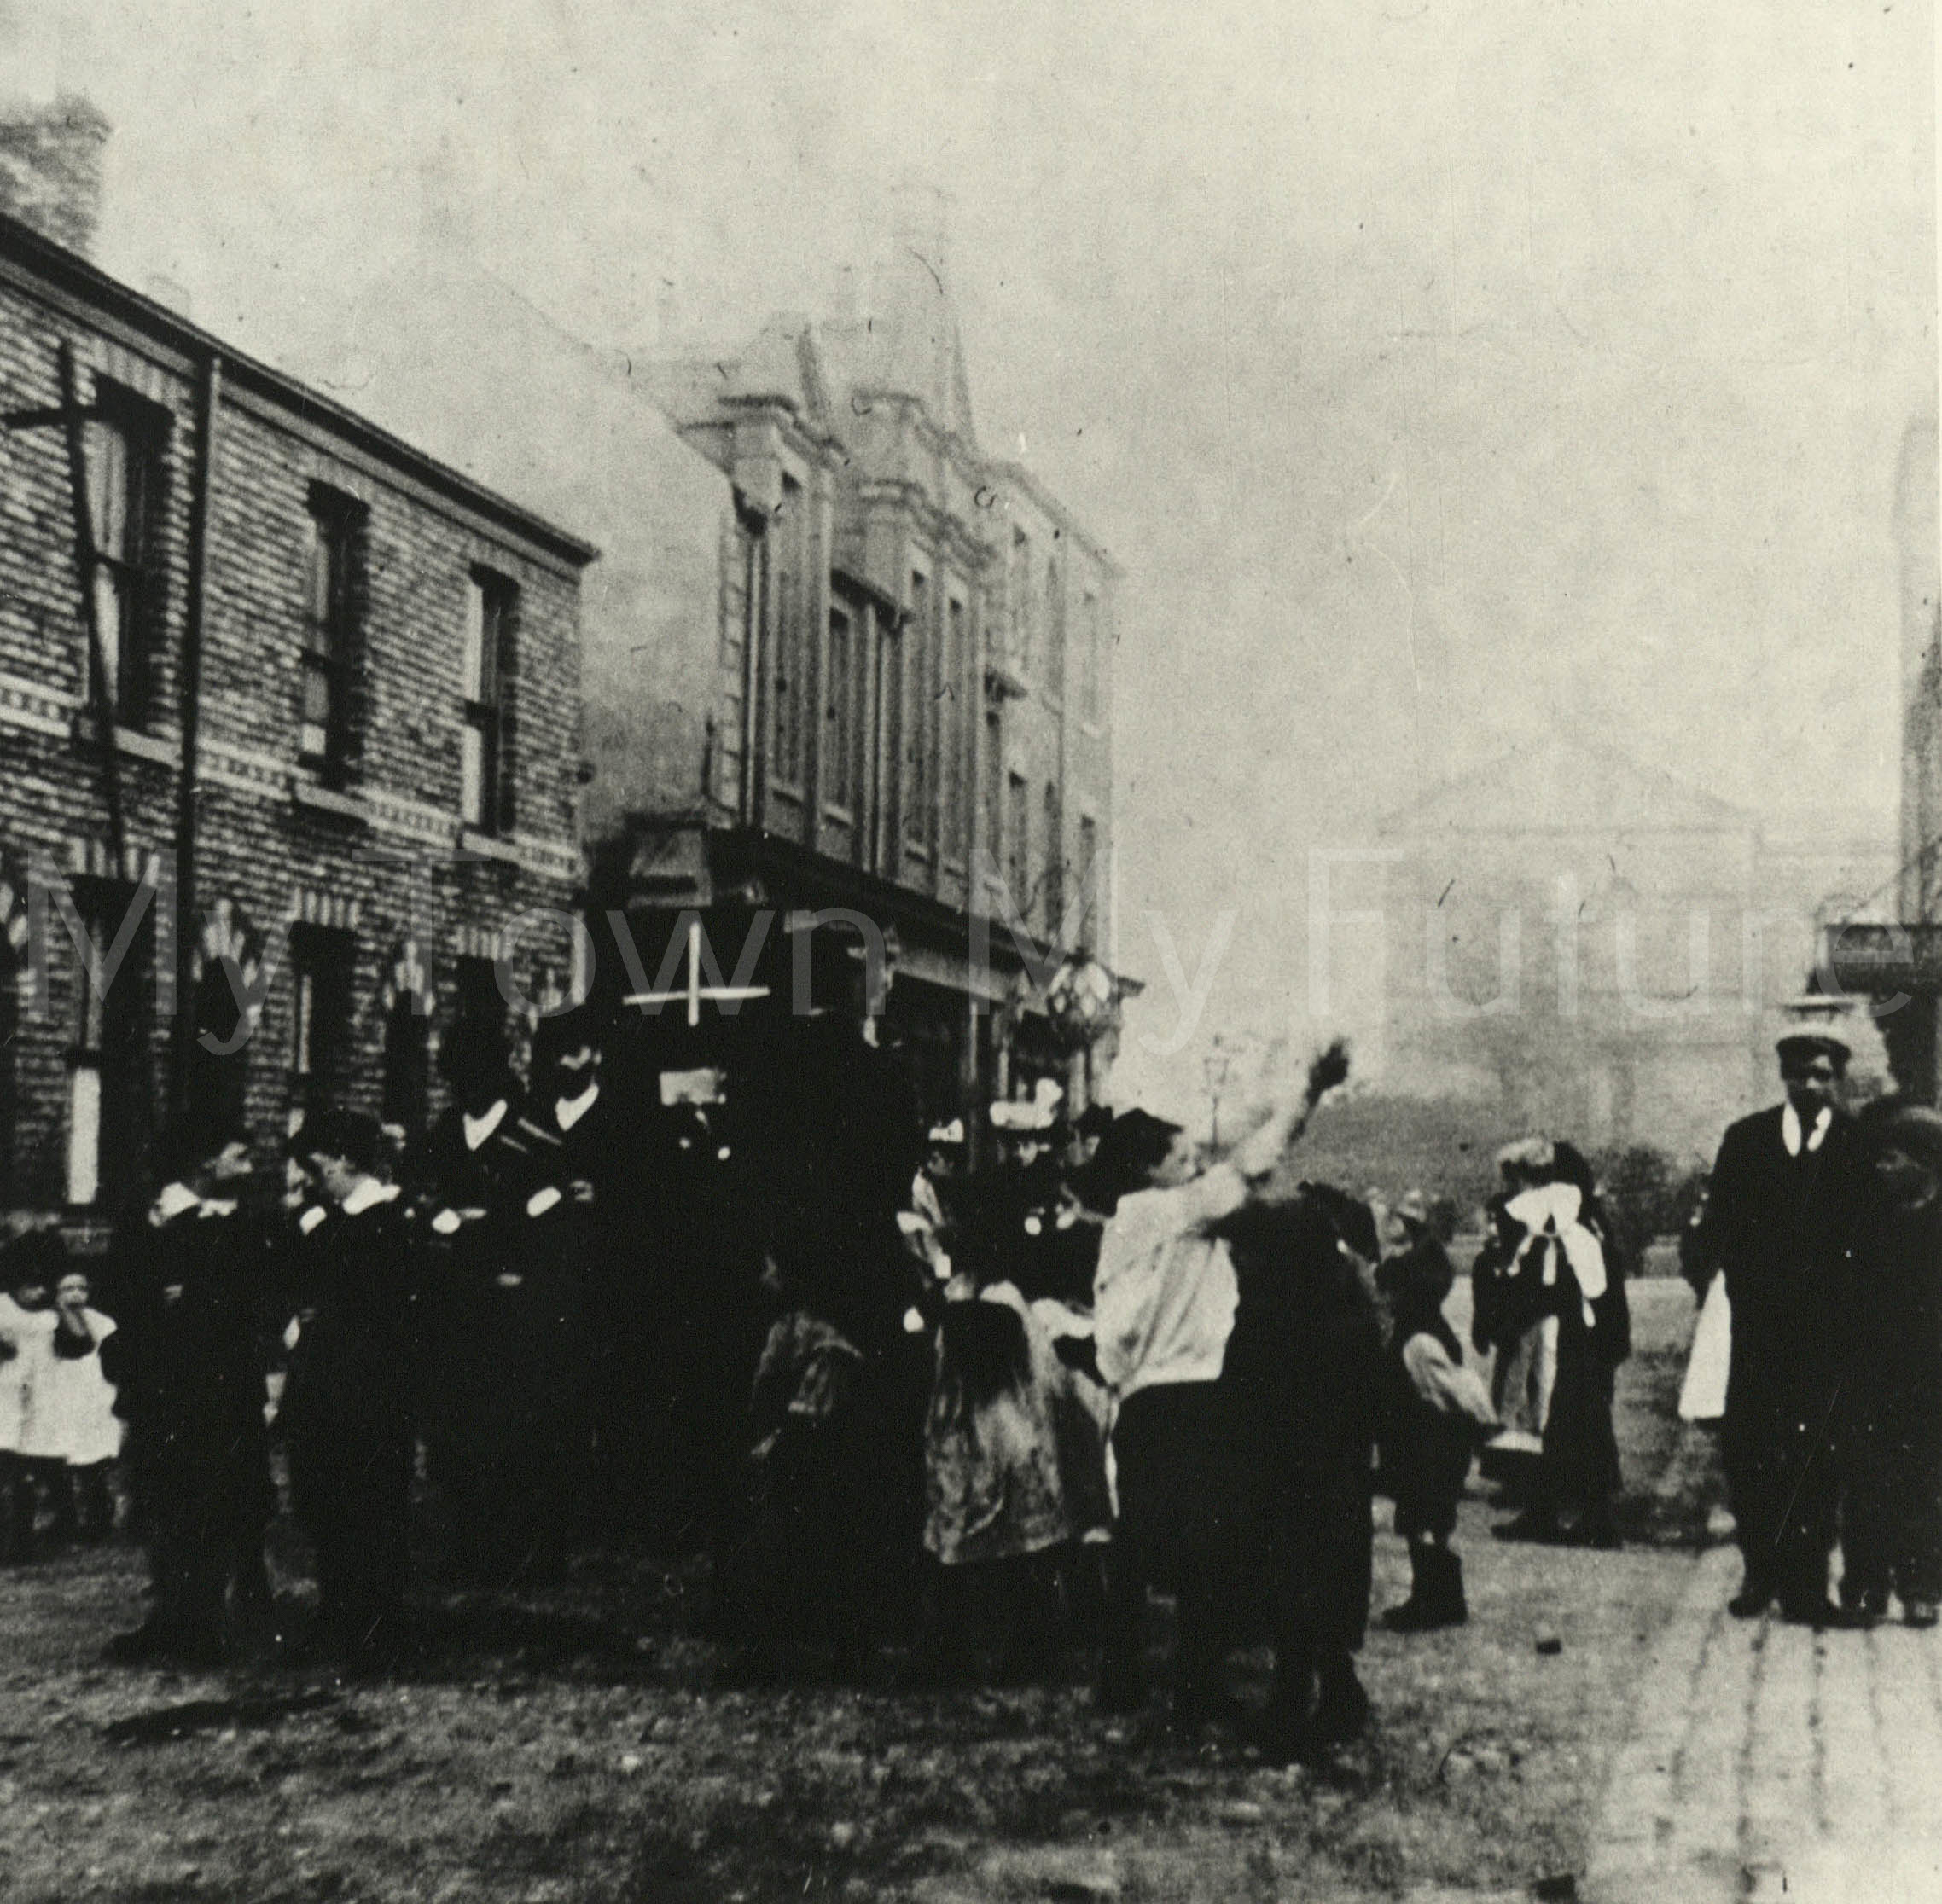 St Paul's Open Air Mission (infirmary In The Background), 1900, Department of Planning - Cleveland County Council